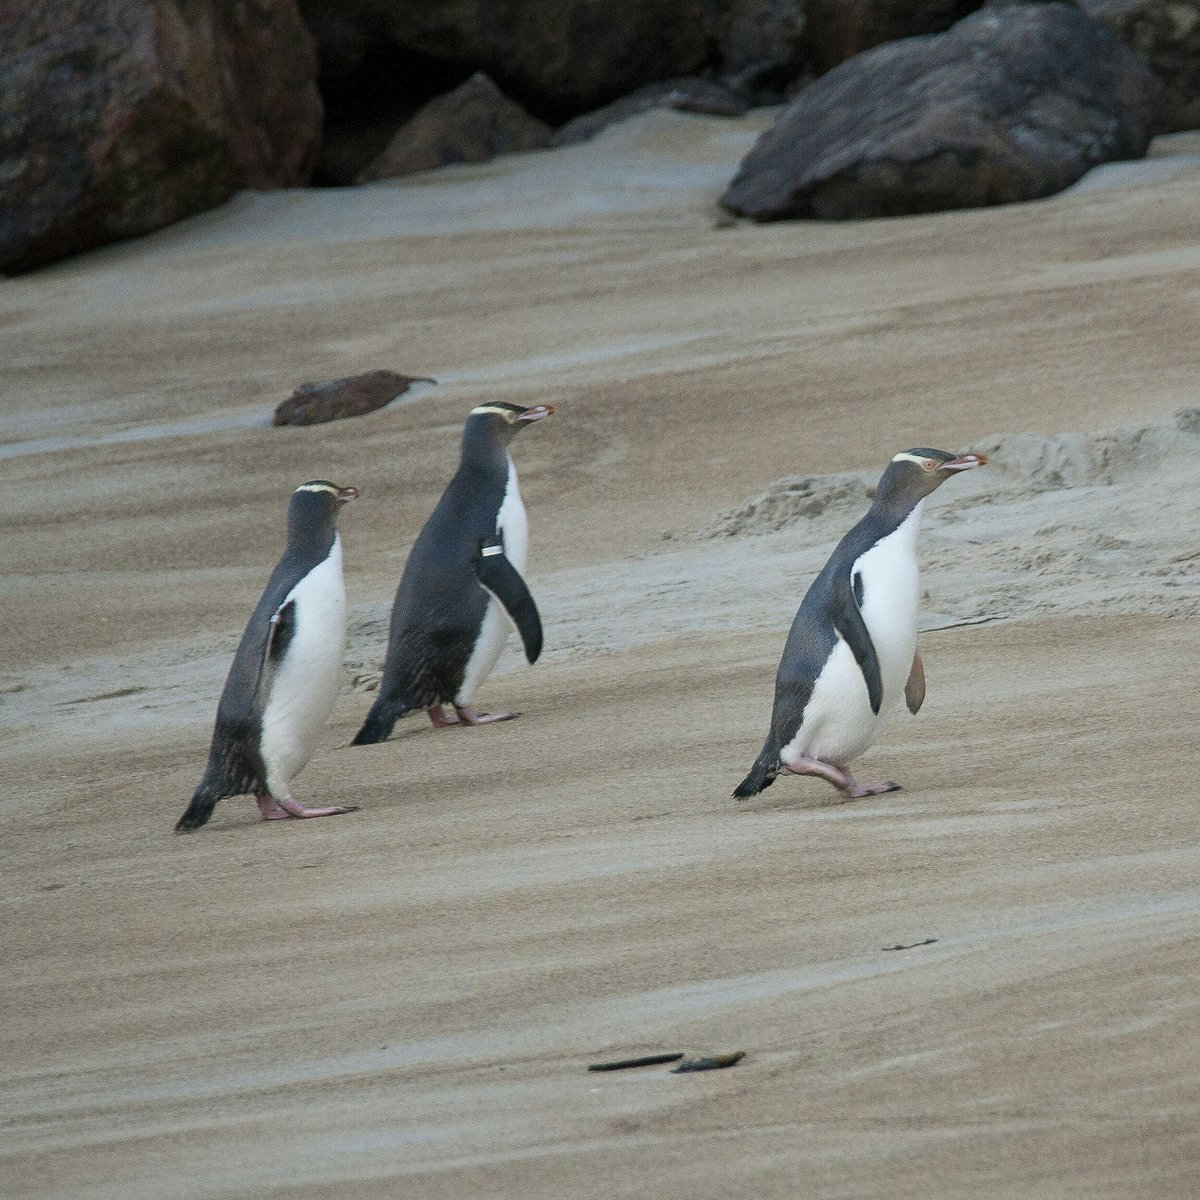 We were very lucky this afternoom and saw 3  Yellow-eyed penguins. Very good for a conference on penguins!!! #Ipc10  https://twitter.com/barbosaandres/status/1166331972387389445/photo/1 <br>http://pic.twitter.com/Z0b7b3KSGk    <br>http://pic.twitter.com/8HIsf5nKRb